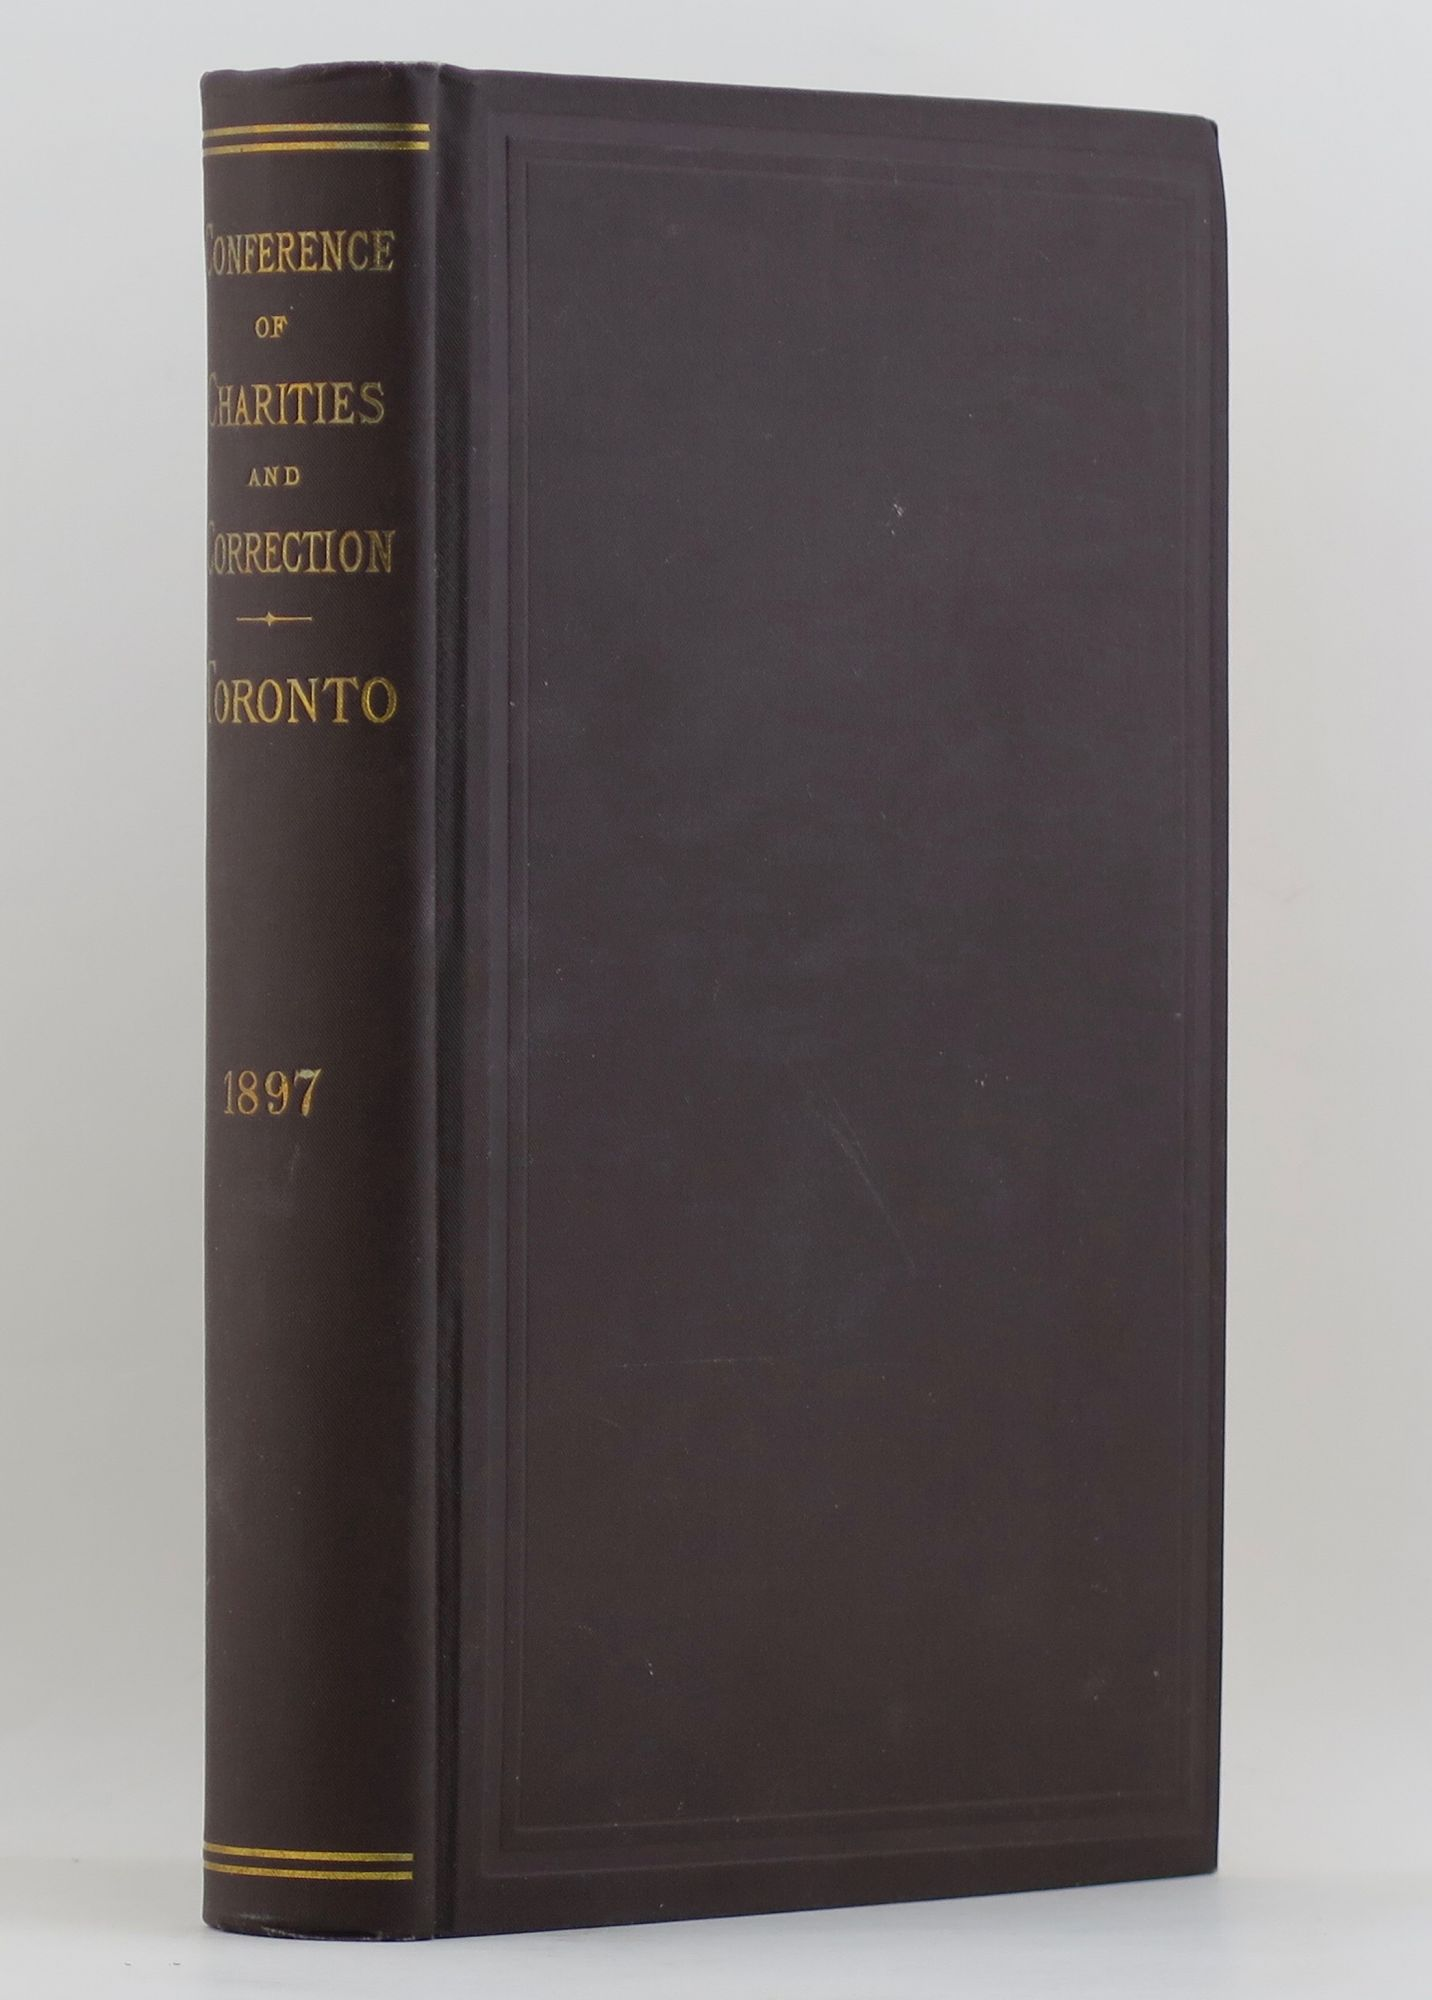 BARROWS, ISABEL CHAPIN (EDITOR) - Proceedings of the National Conference of Charities and Correction at the Twenty-Fourth Annual Session Held in the City of Toronto, Ontario, July 7-14, 1897